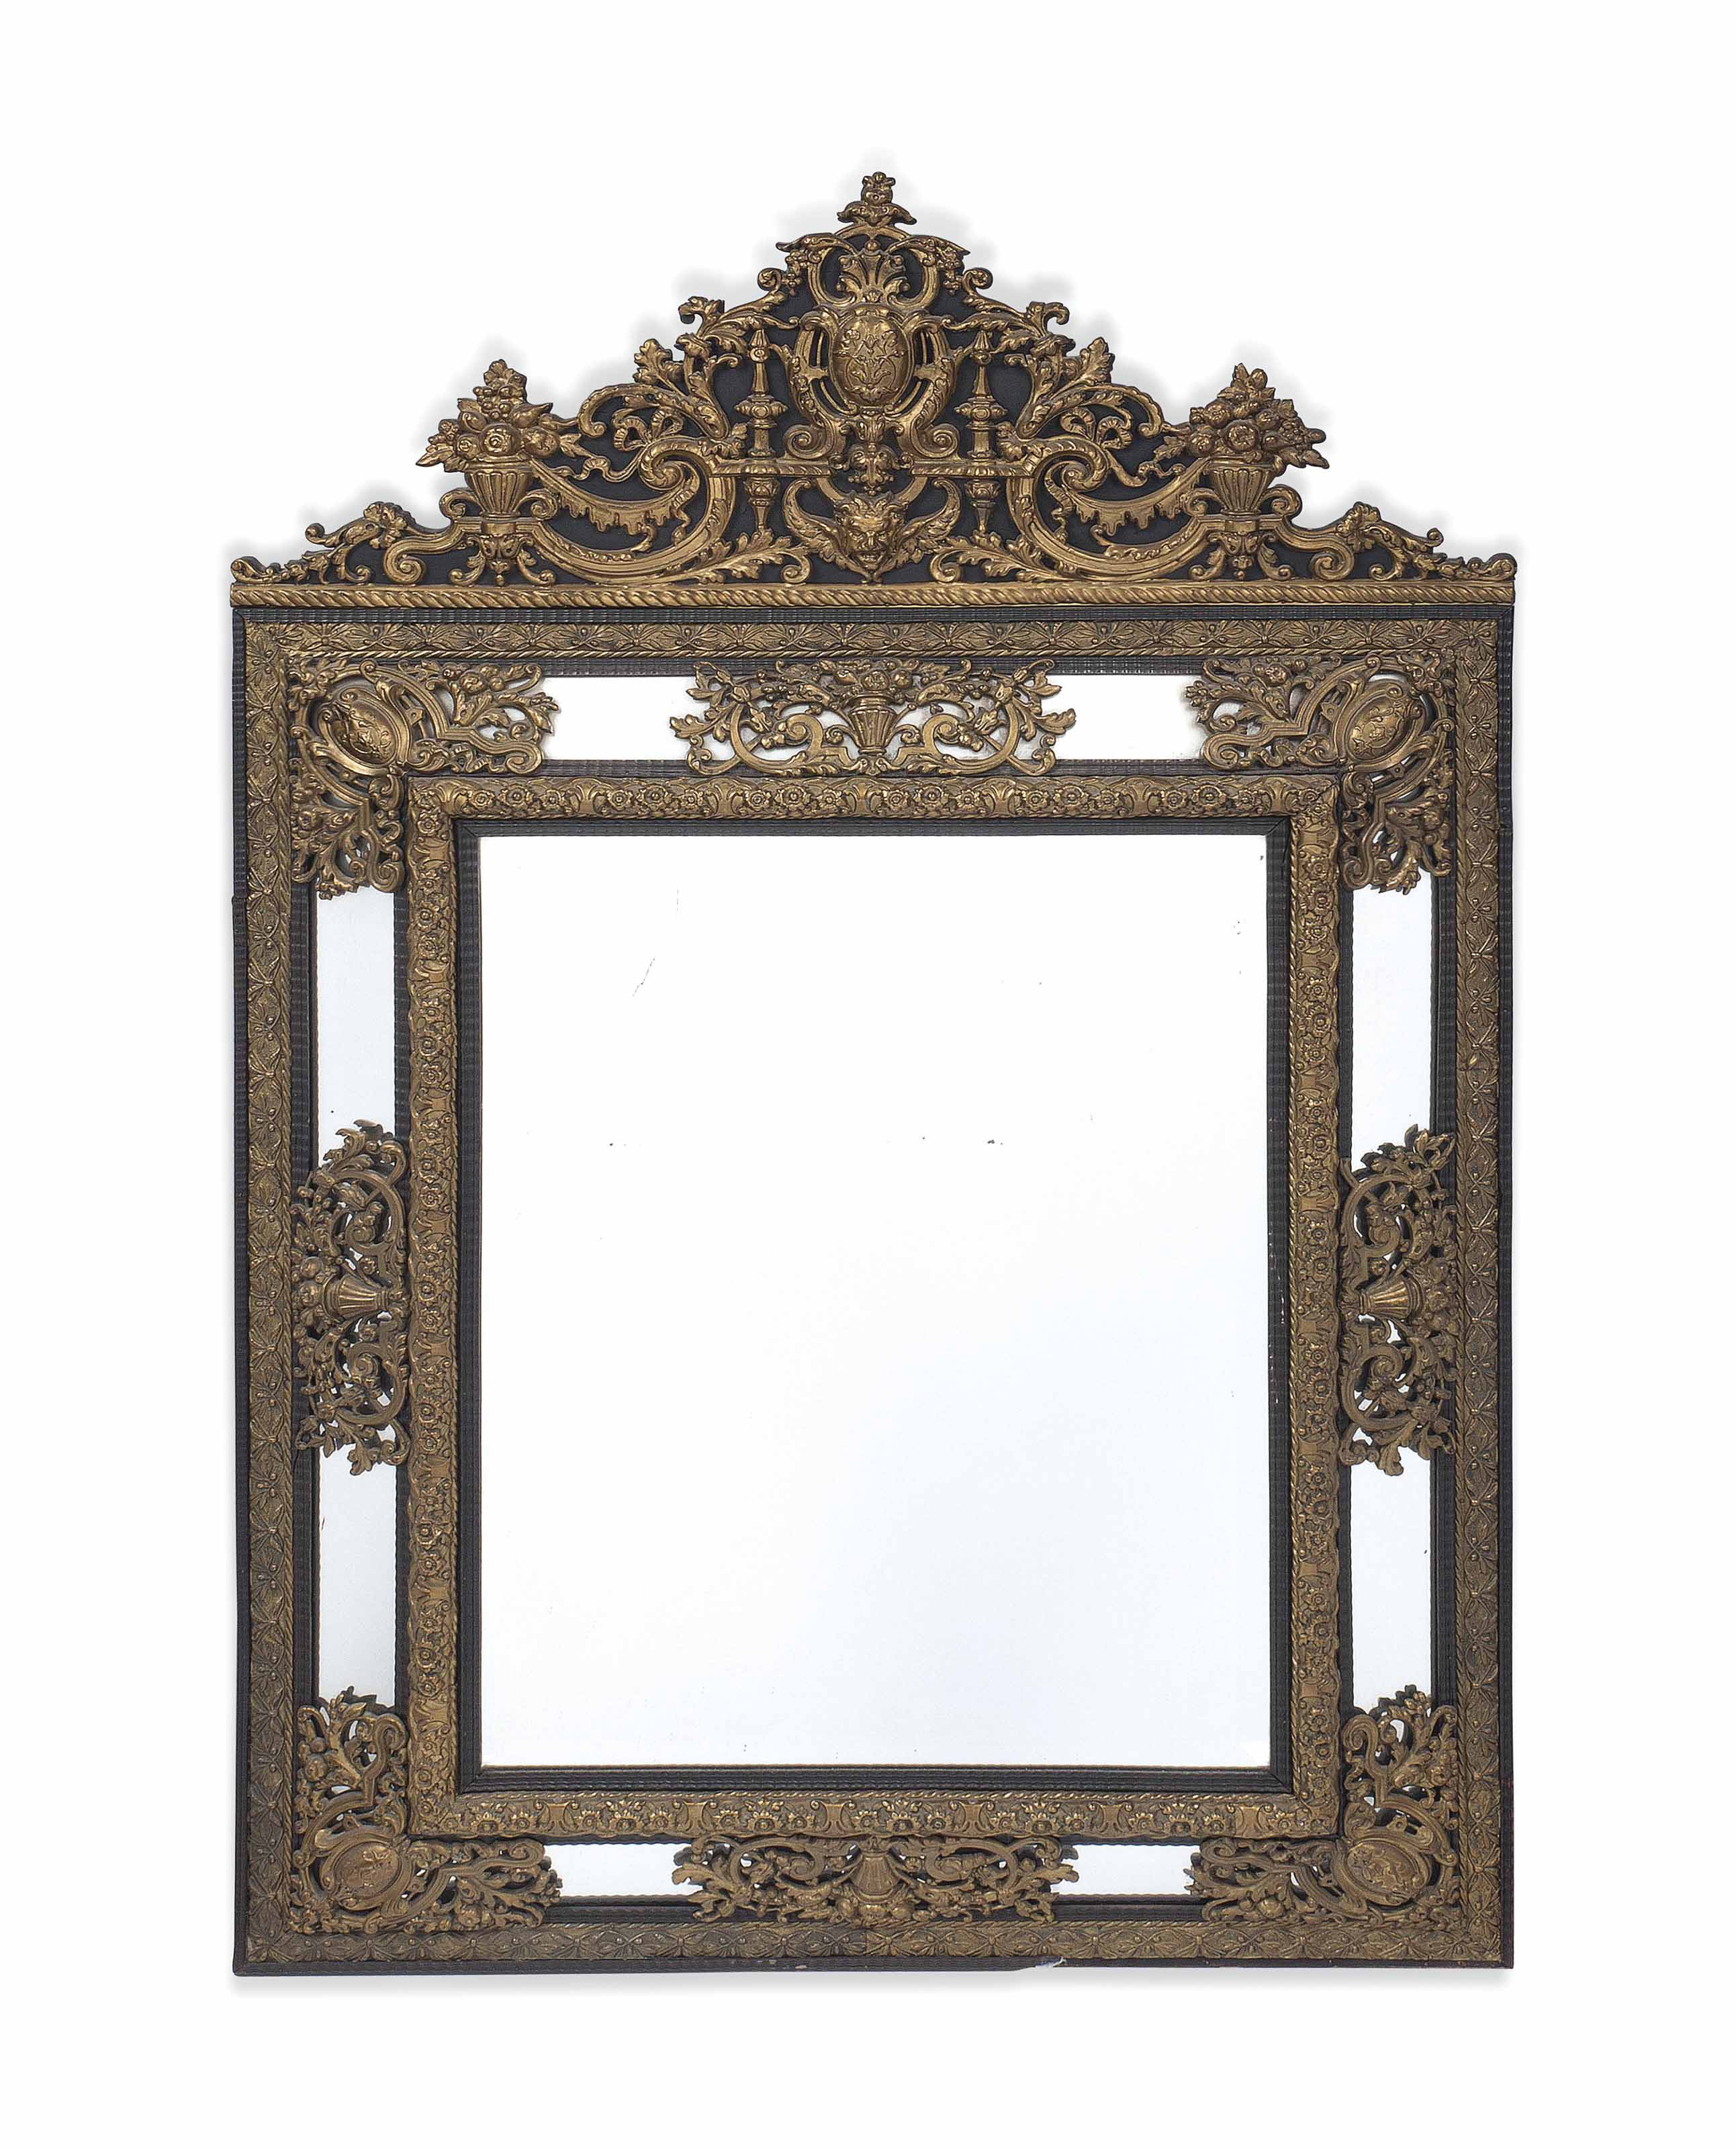 A LARGE DUTCH EBONISED AND REPOUSSE GILT-METAL MIRROR